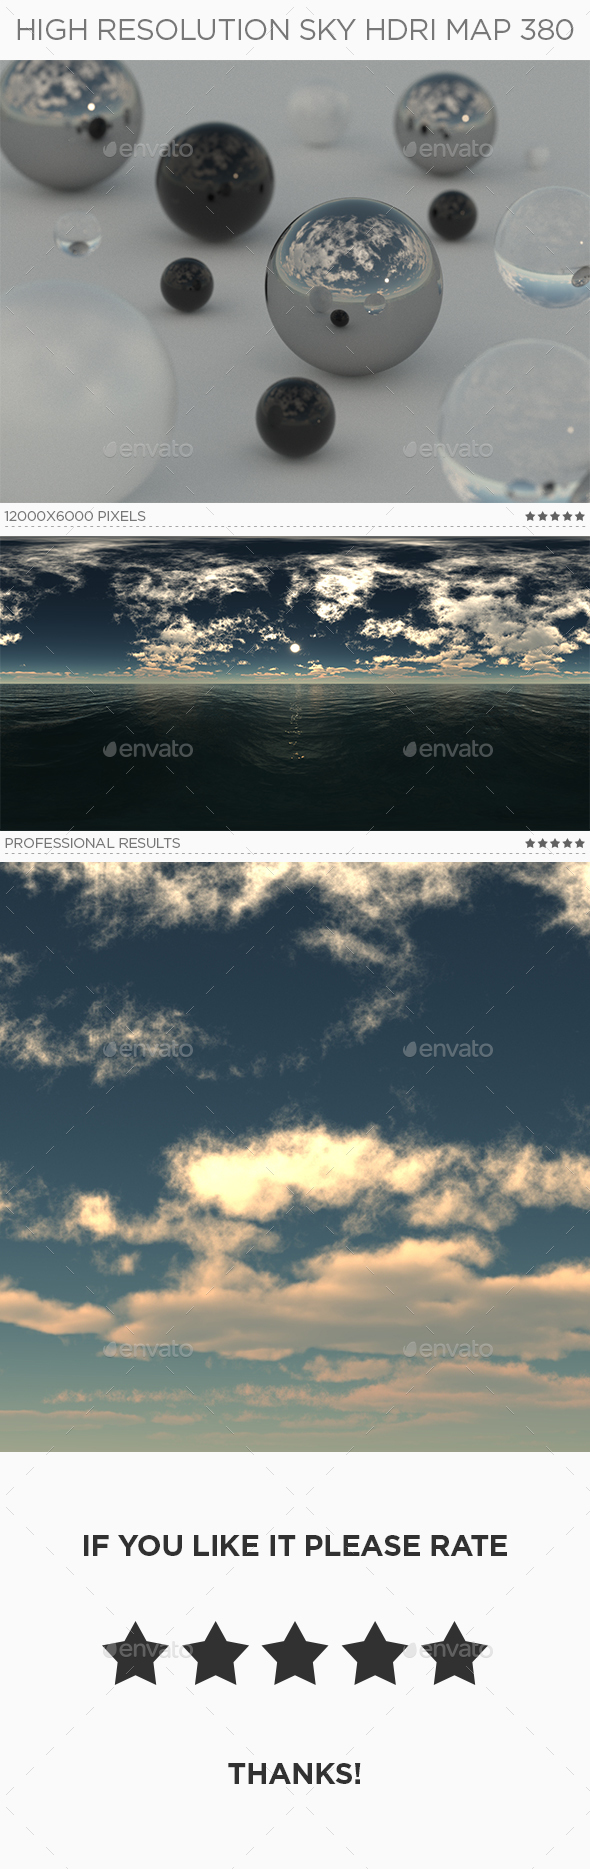 High Resolution Sky HDRi Map 380 - 3DOcean Item for Sale